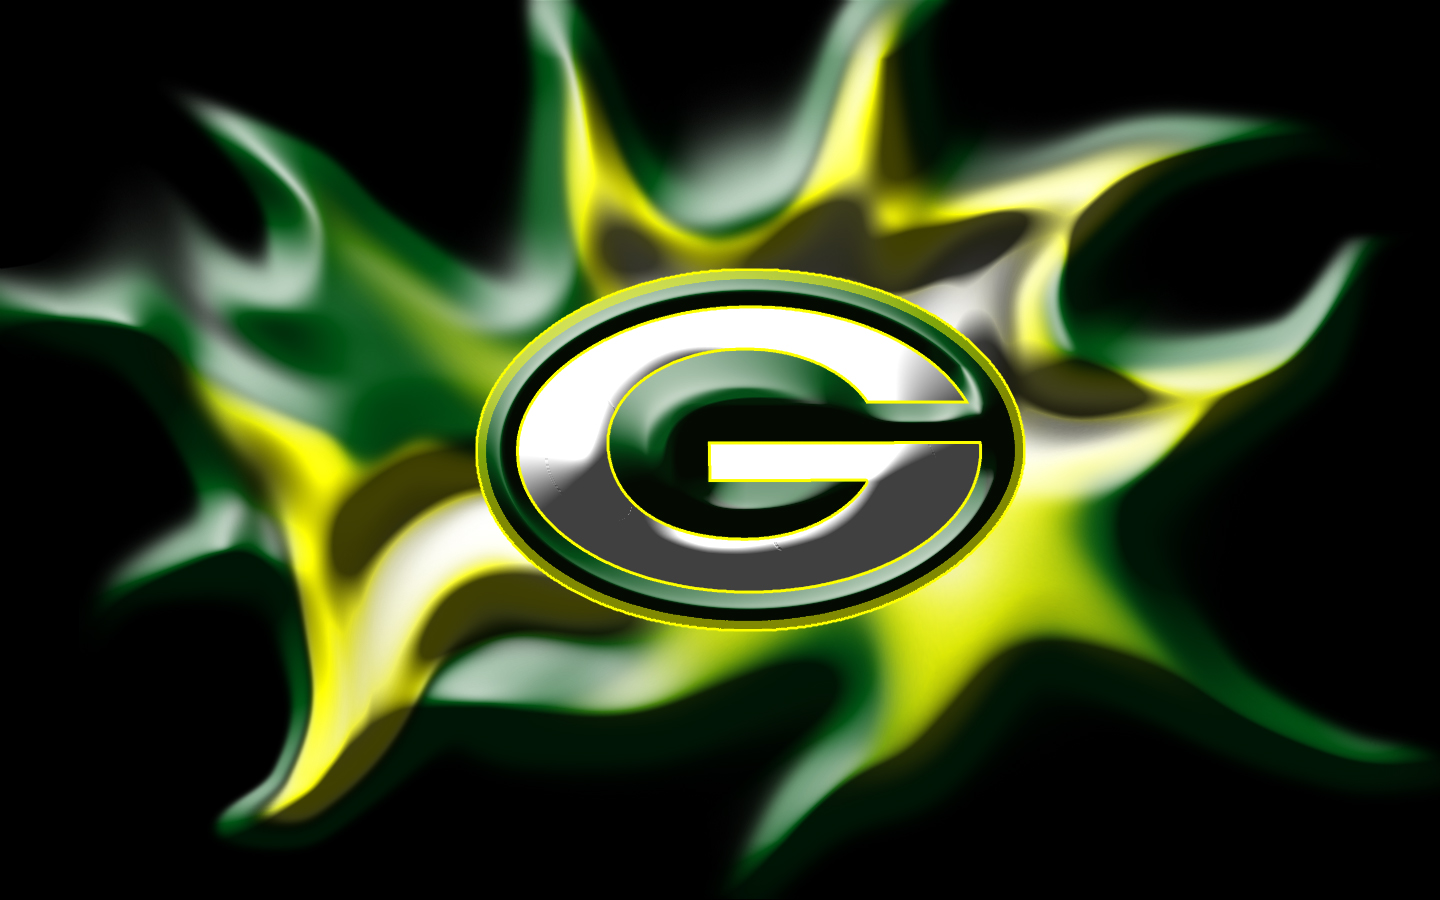 Free Download Green Bay Packers Wallpaper Hd Desktop Wallpaper